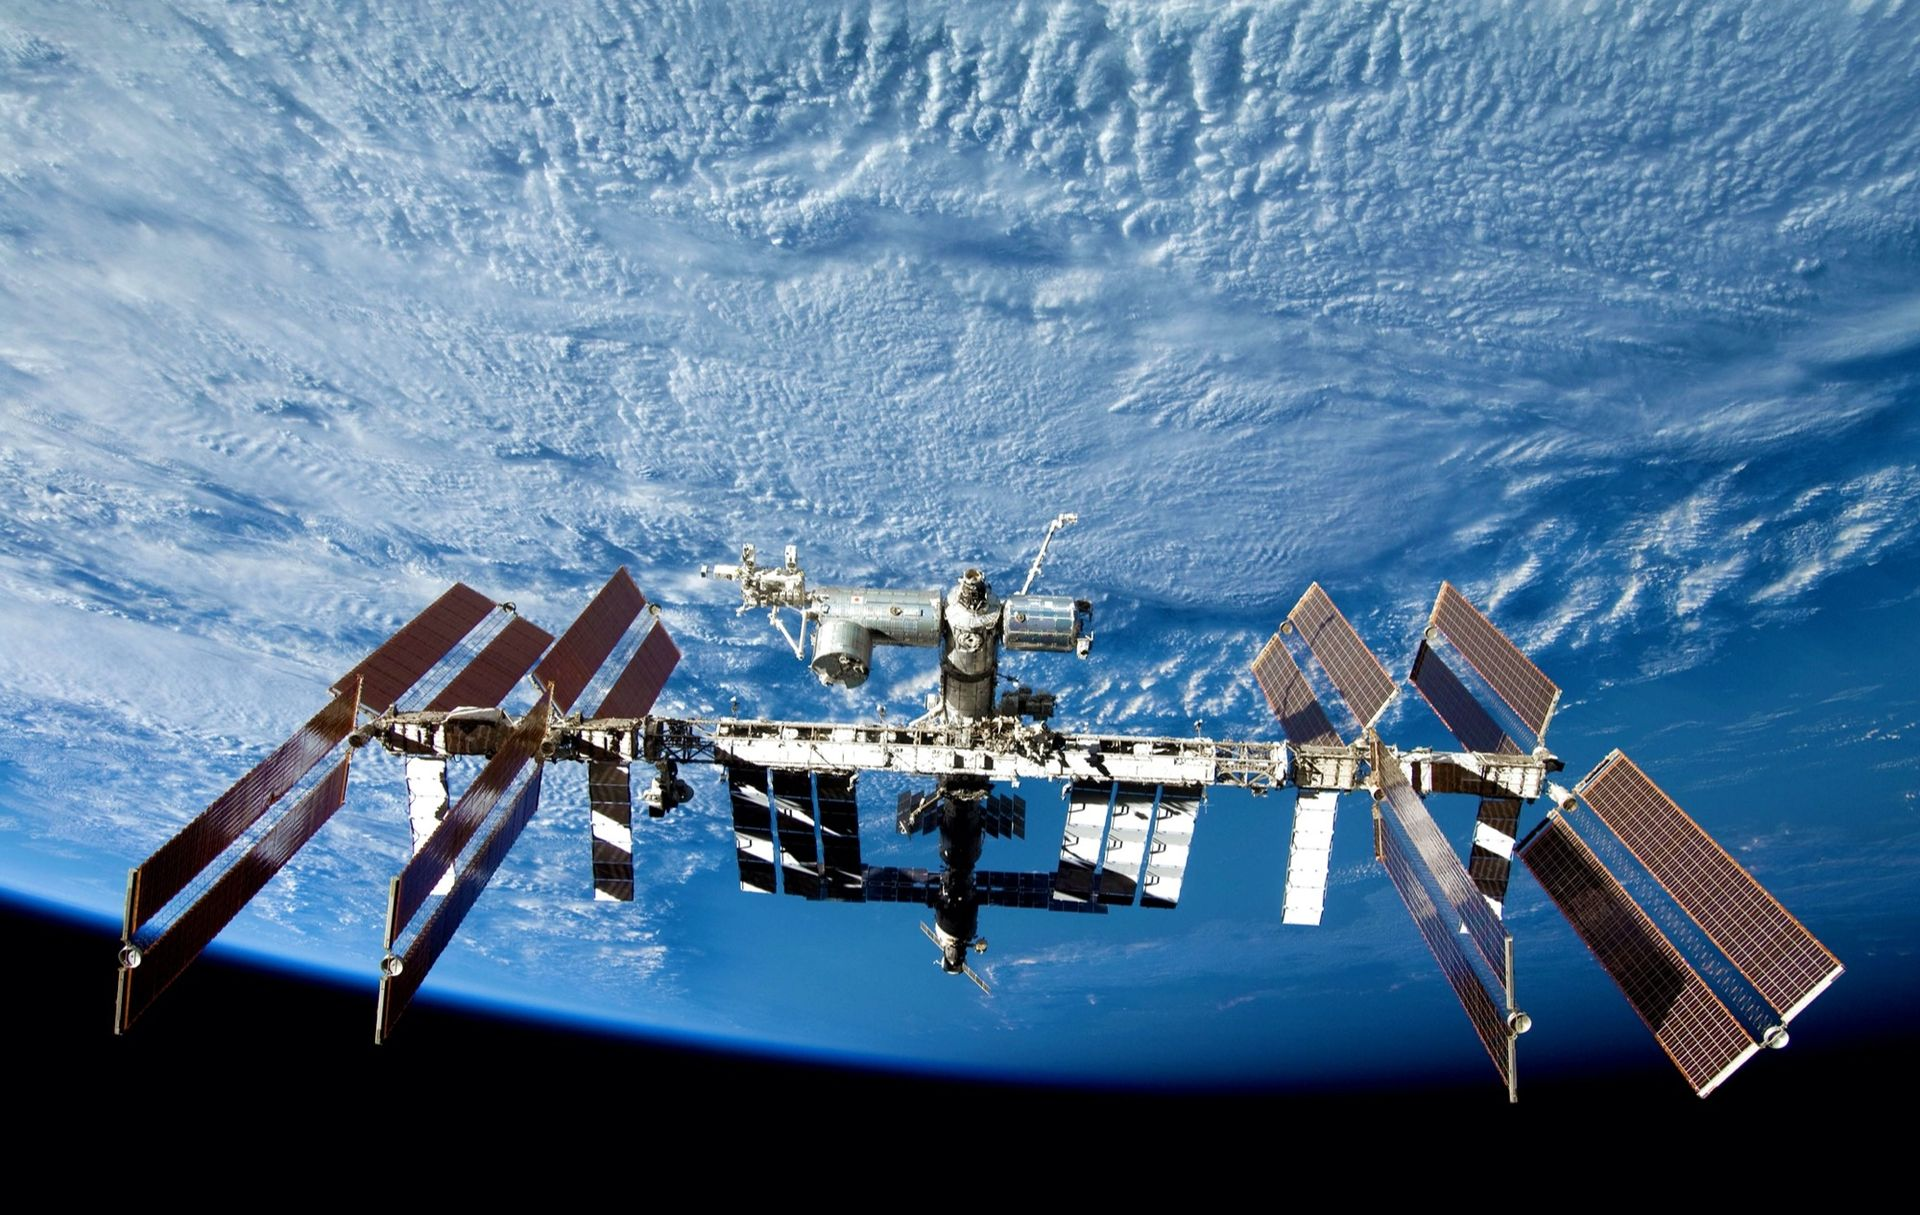 20 Years of the International Space Station